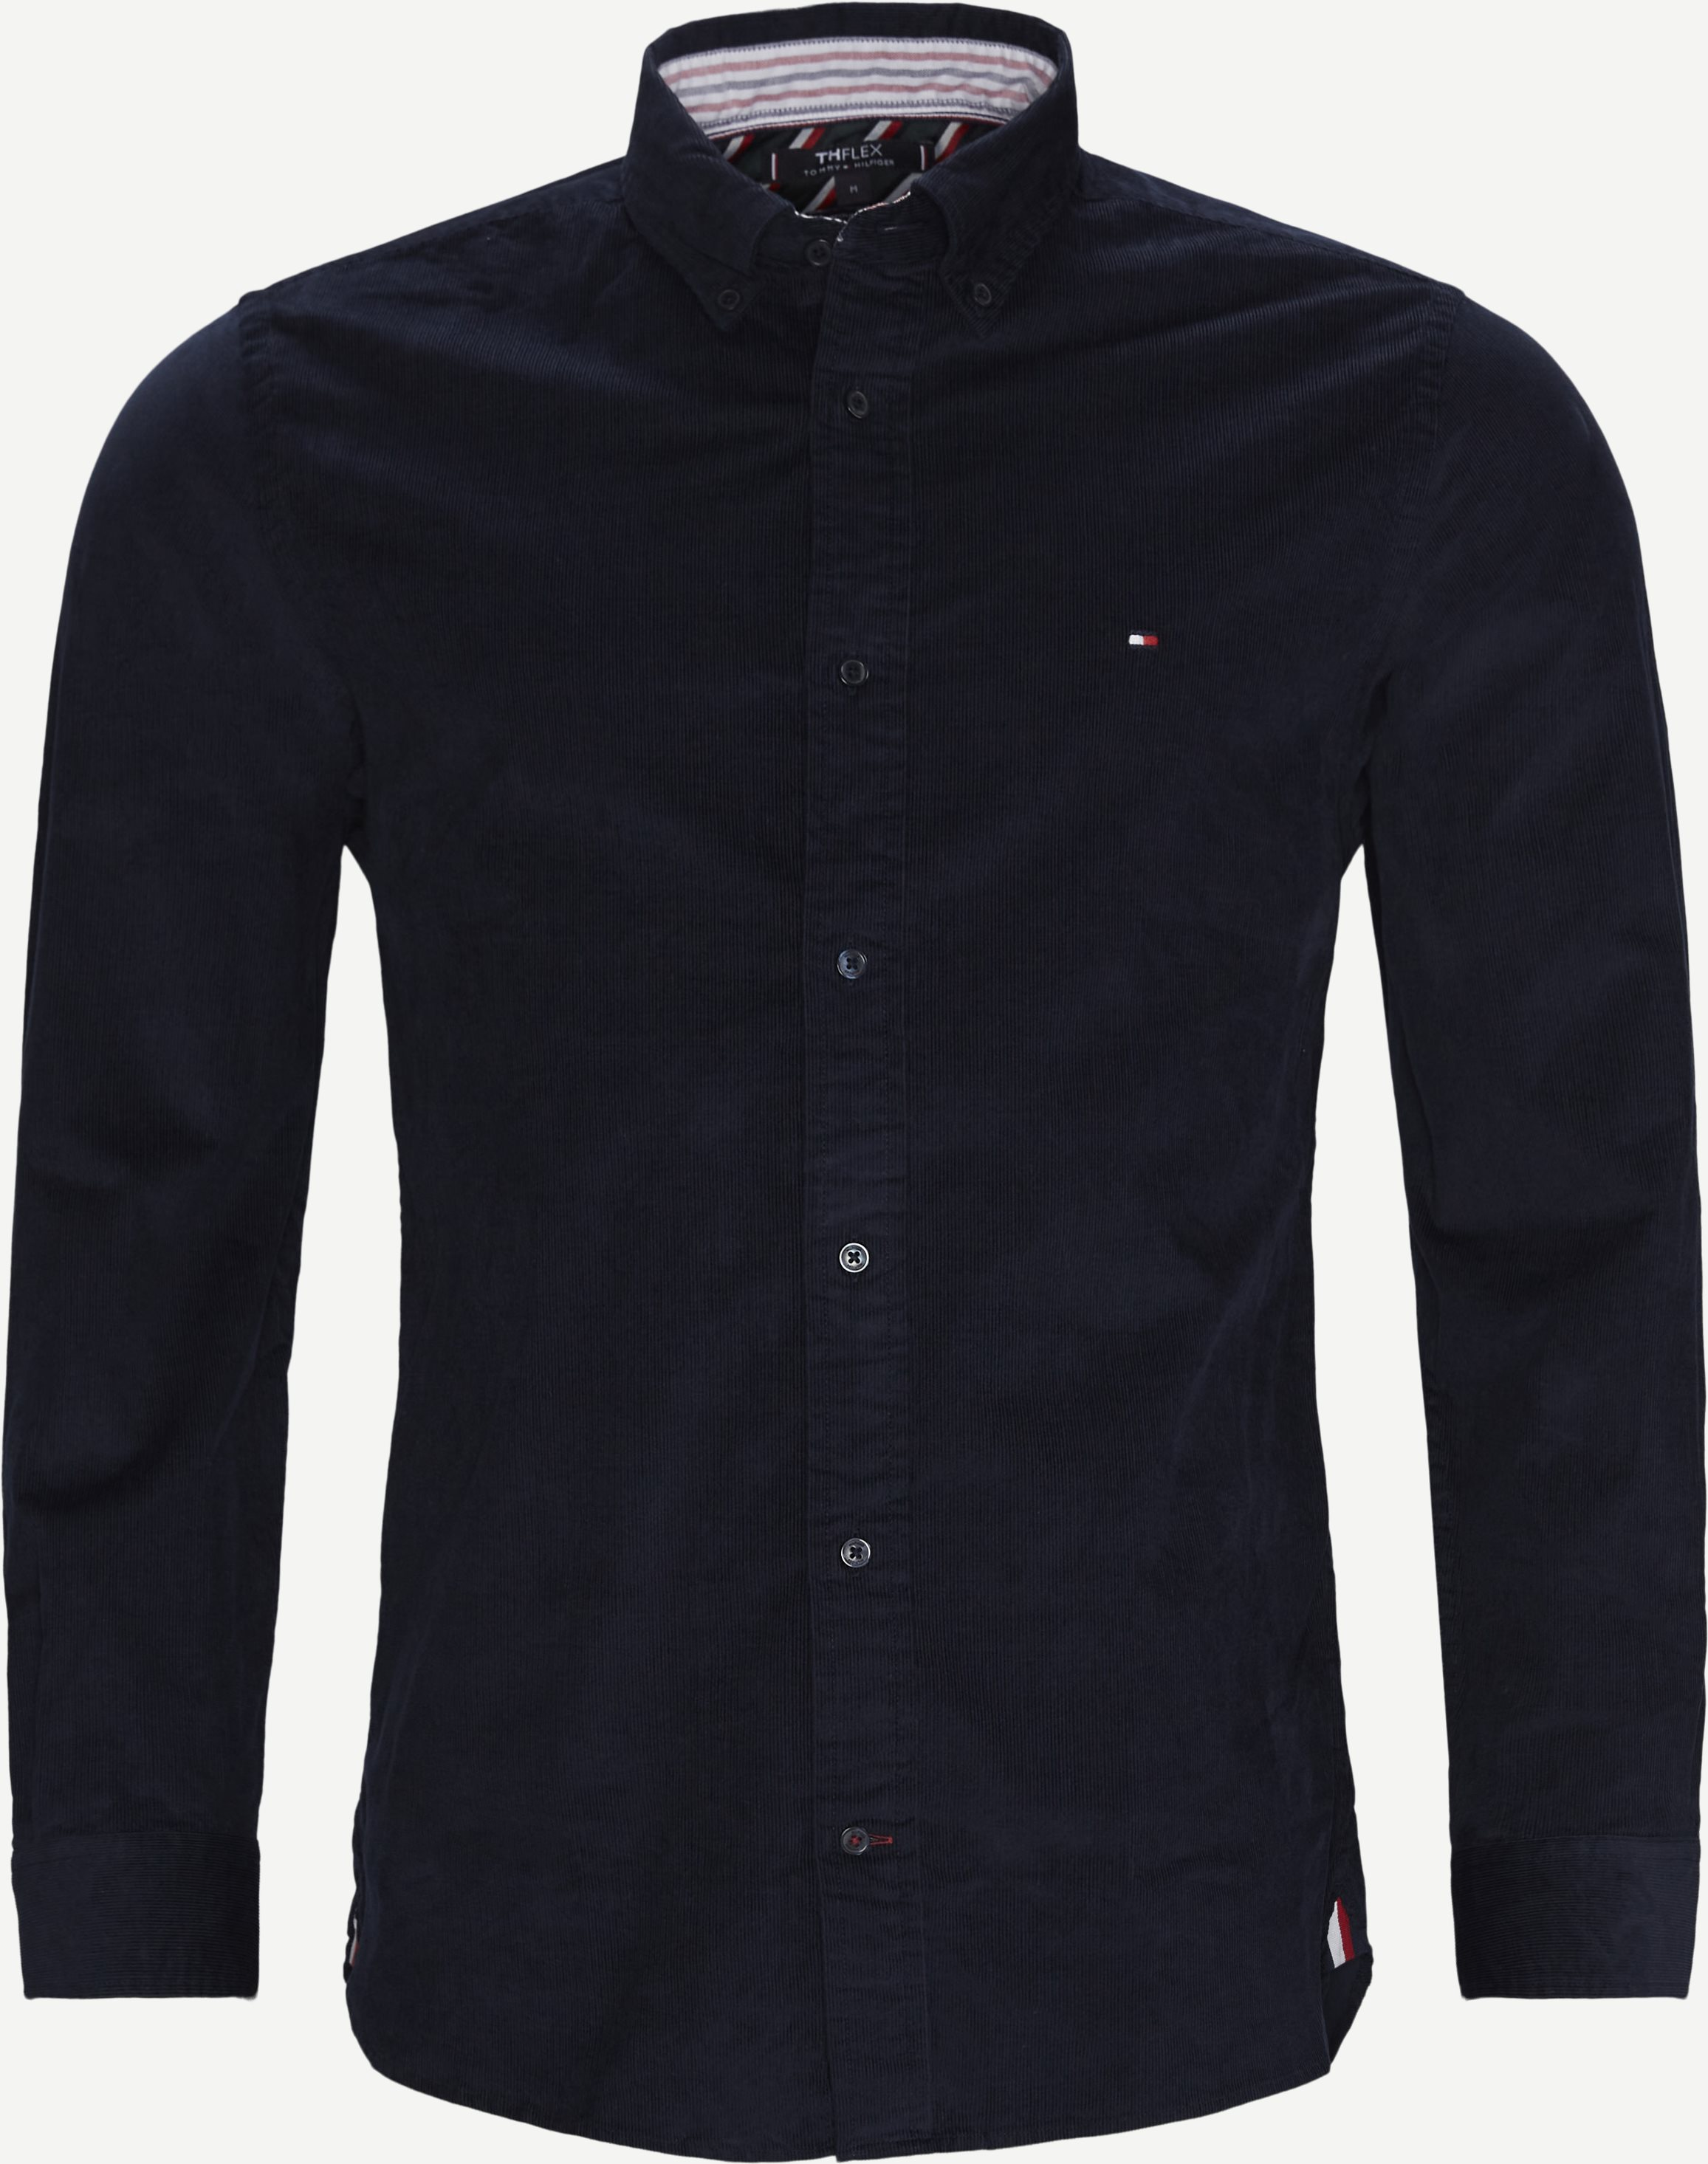 Flex Corduroy Shirt - Shirts - Regular - Blue